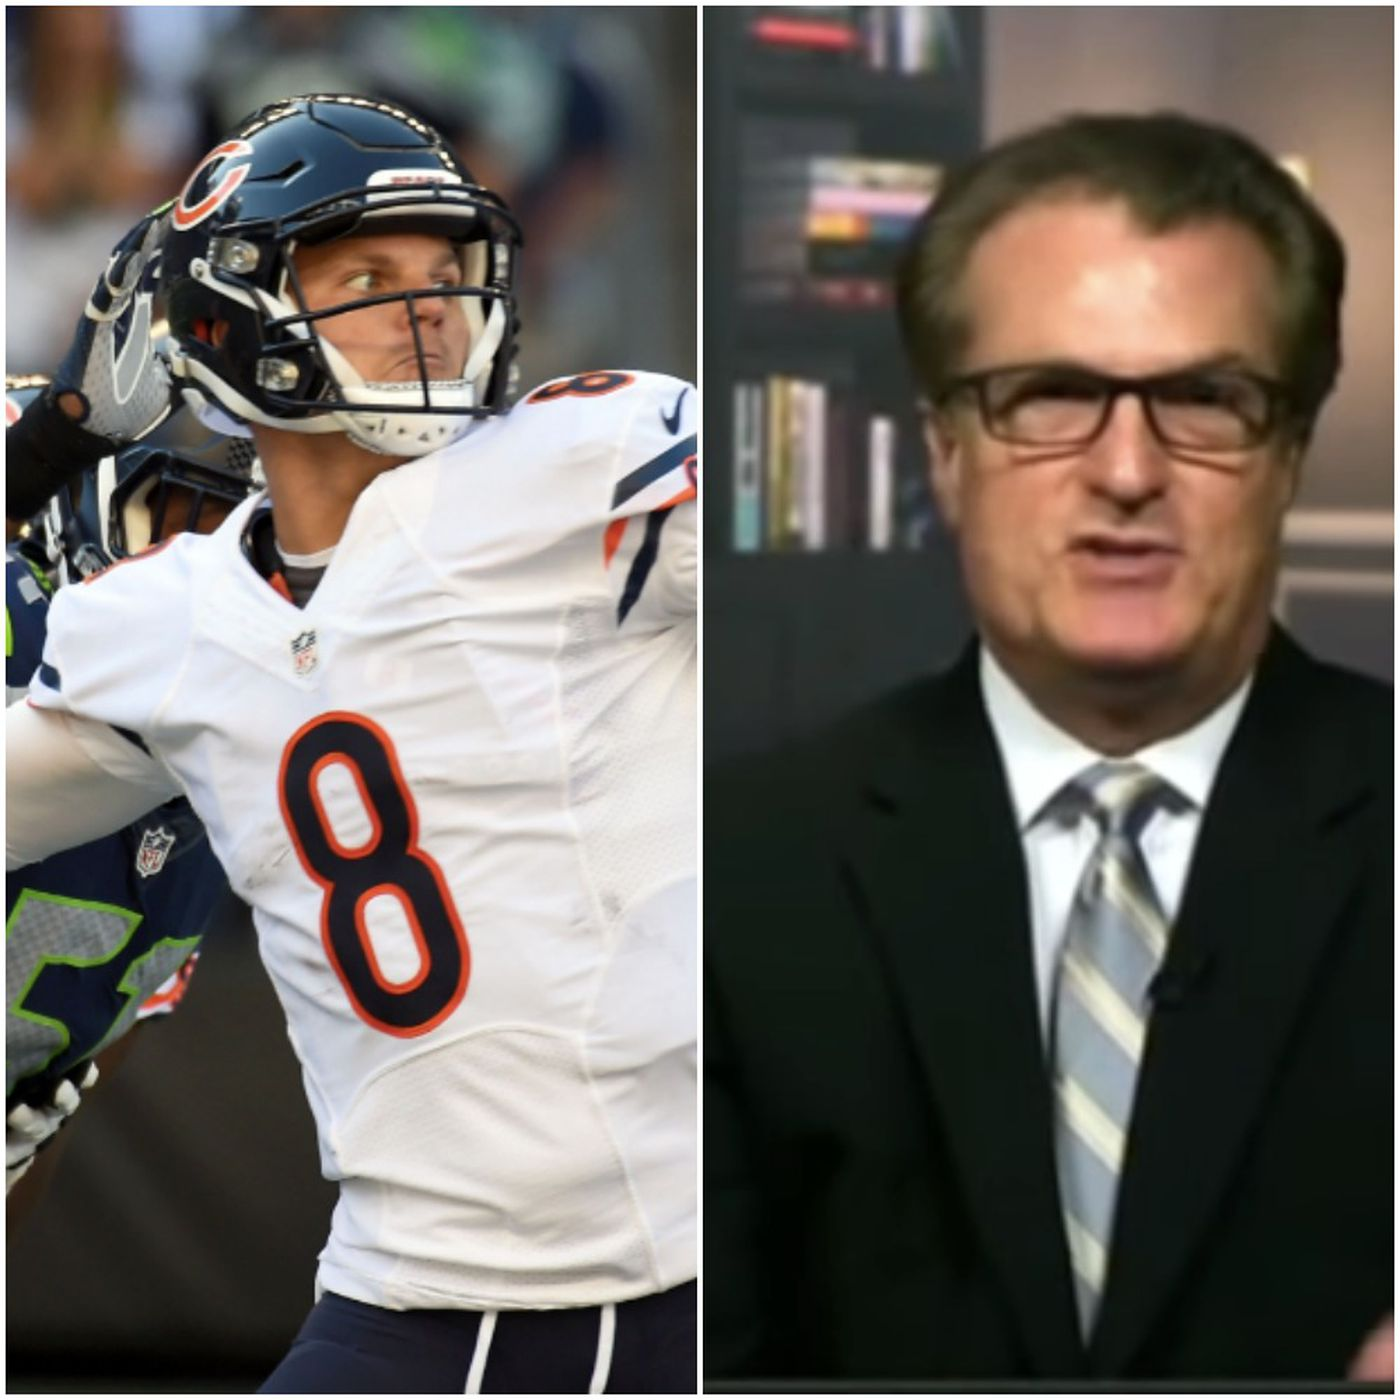 c79e70c930a Mel Kiper has to retire right now, based on a Jimmy Clausen bet he made  before the 2010 NFL Draft